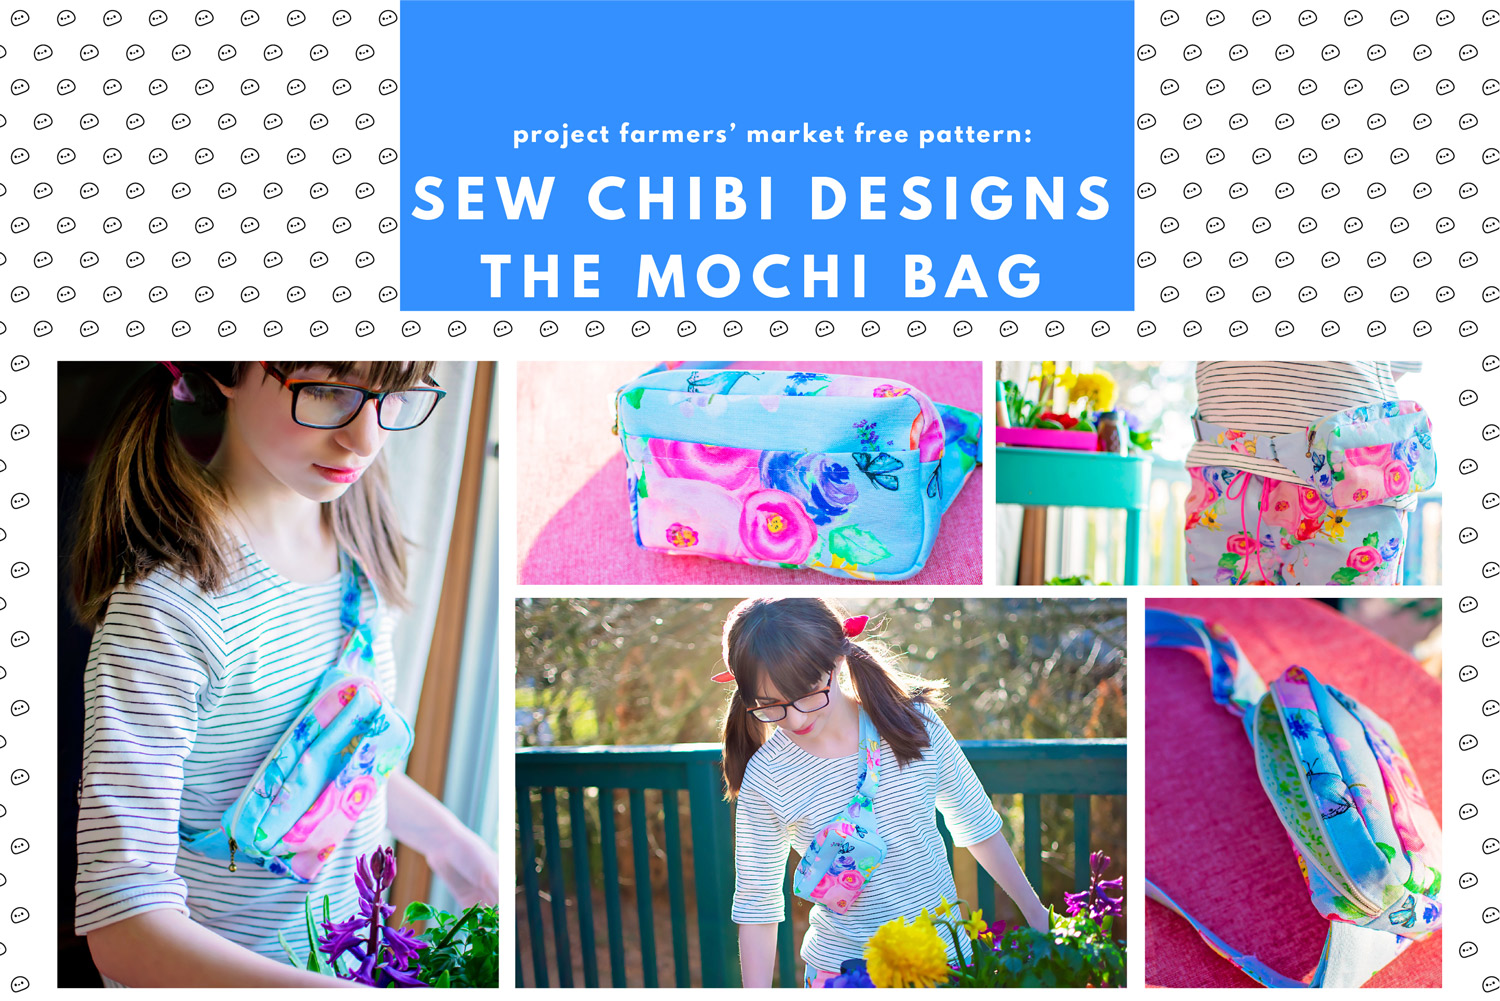 FREE PATTERN! the Mochi Bag for Kids and Adults. An adjustable strap, zippered chest bag (can be worn on hips too!) with a front pocket! A must-have accessory for any outing!  Pairs well with the �Ichigo Bomber Jacket PDF Pattern by Sew Chibi Designs. A lightweight, color blocked, knit coat for all kids: boys and girls, from baby to teen! Perfect for spring! Grab a copy of the pattern for $9 USD.